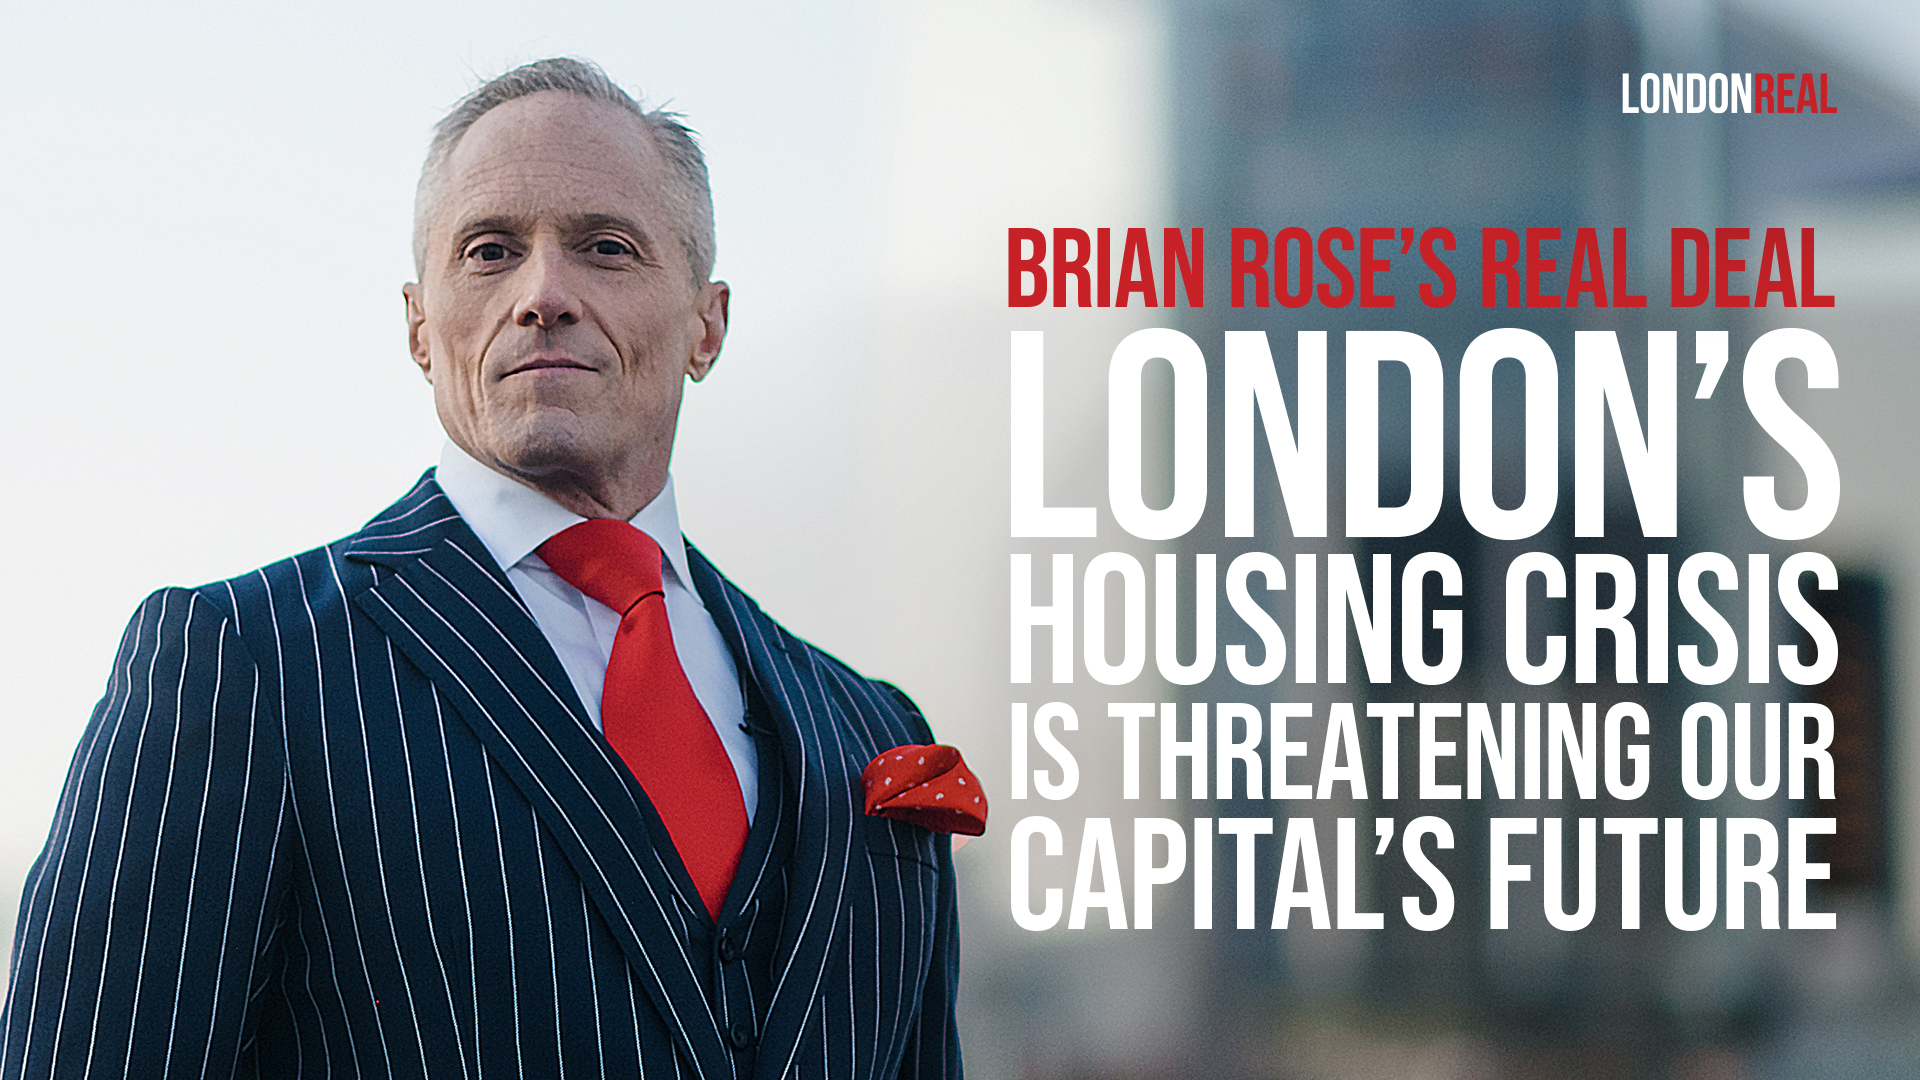 Brian Rose's Real Deal - London's Housing Crisis Is Threatening Our Capital's Future - Our Mayor Has Failed In His Promises To Build Affordable Homes For Our Citizens